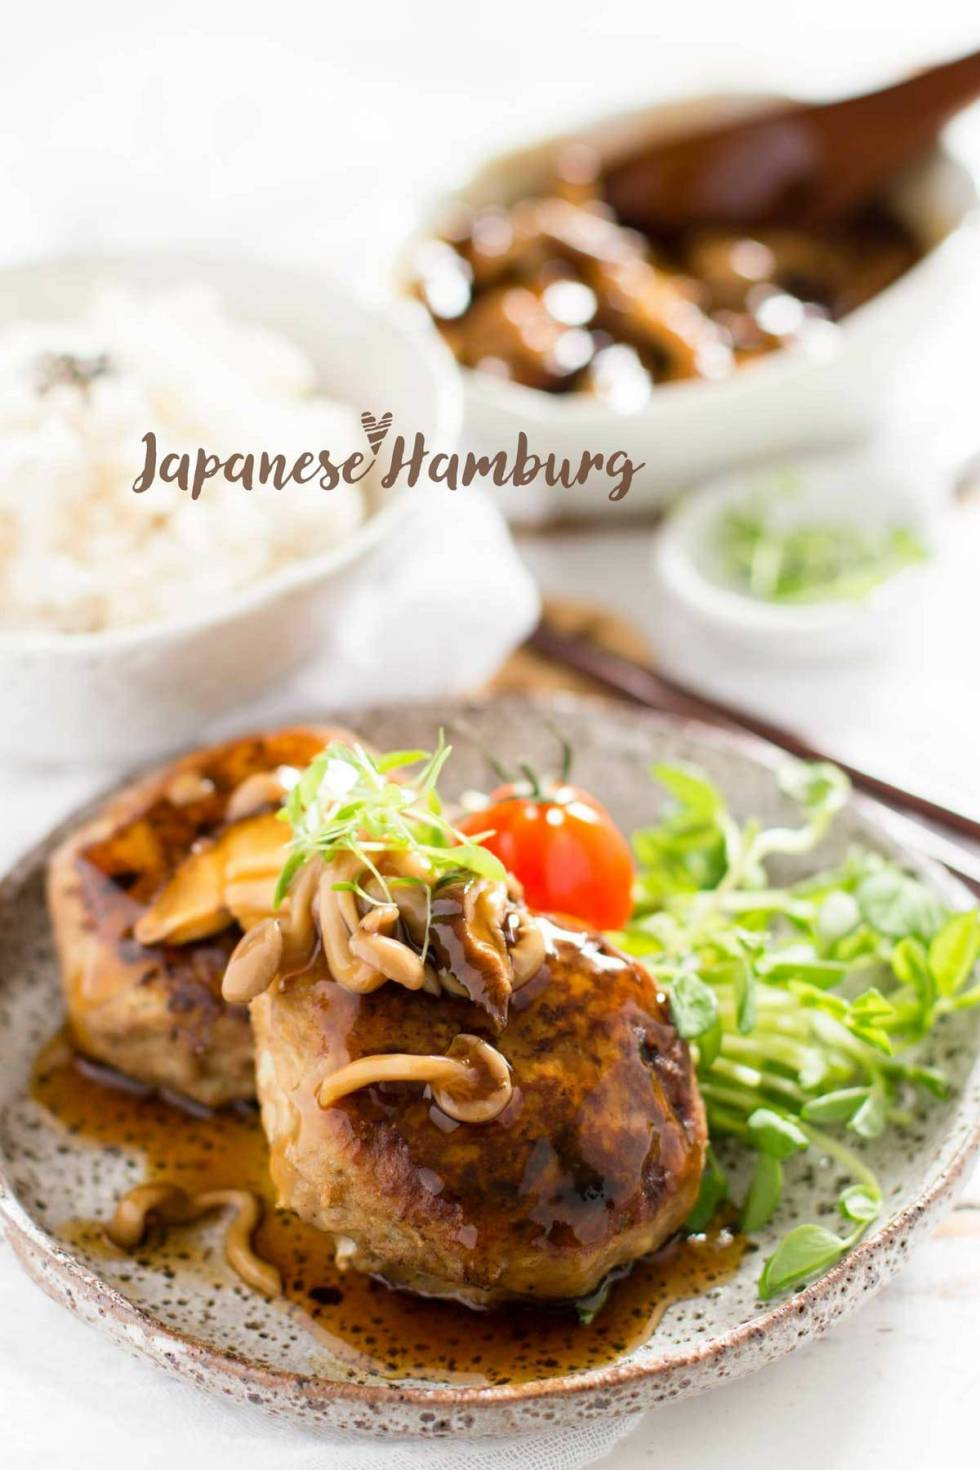 Japanese hamburg steak